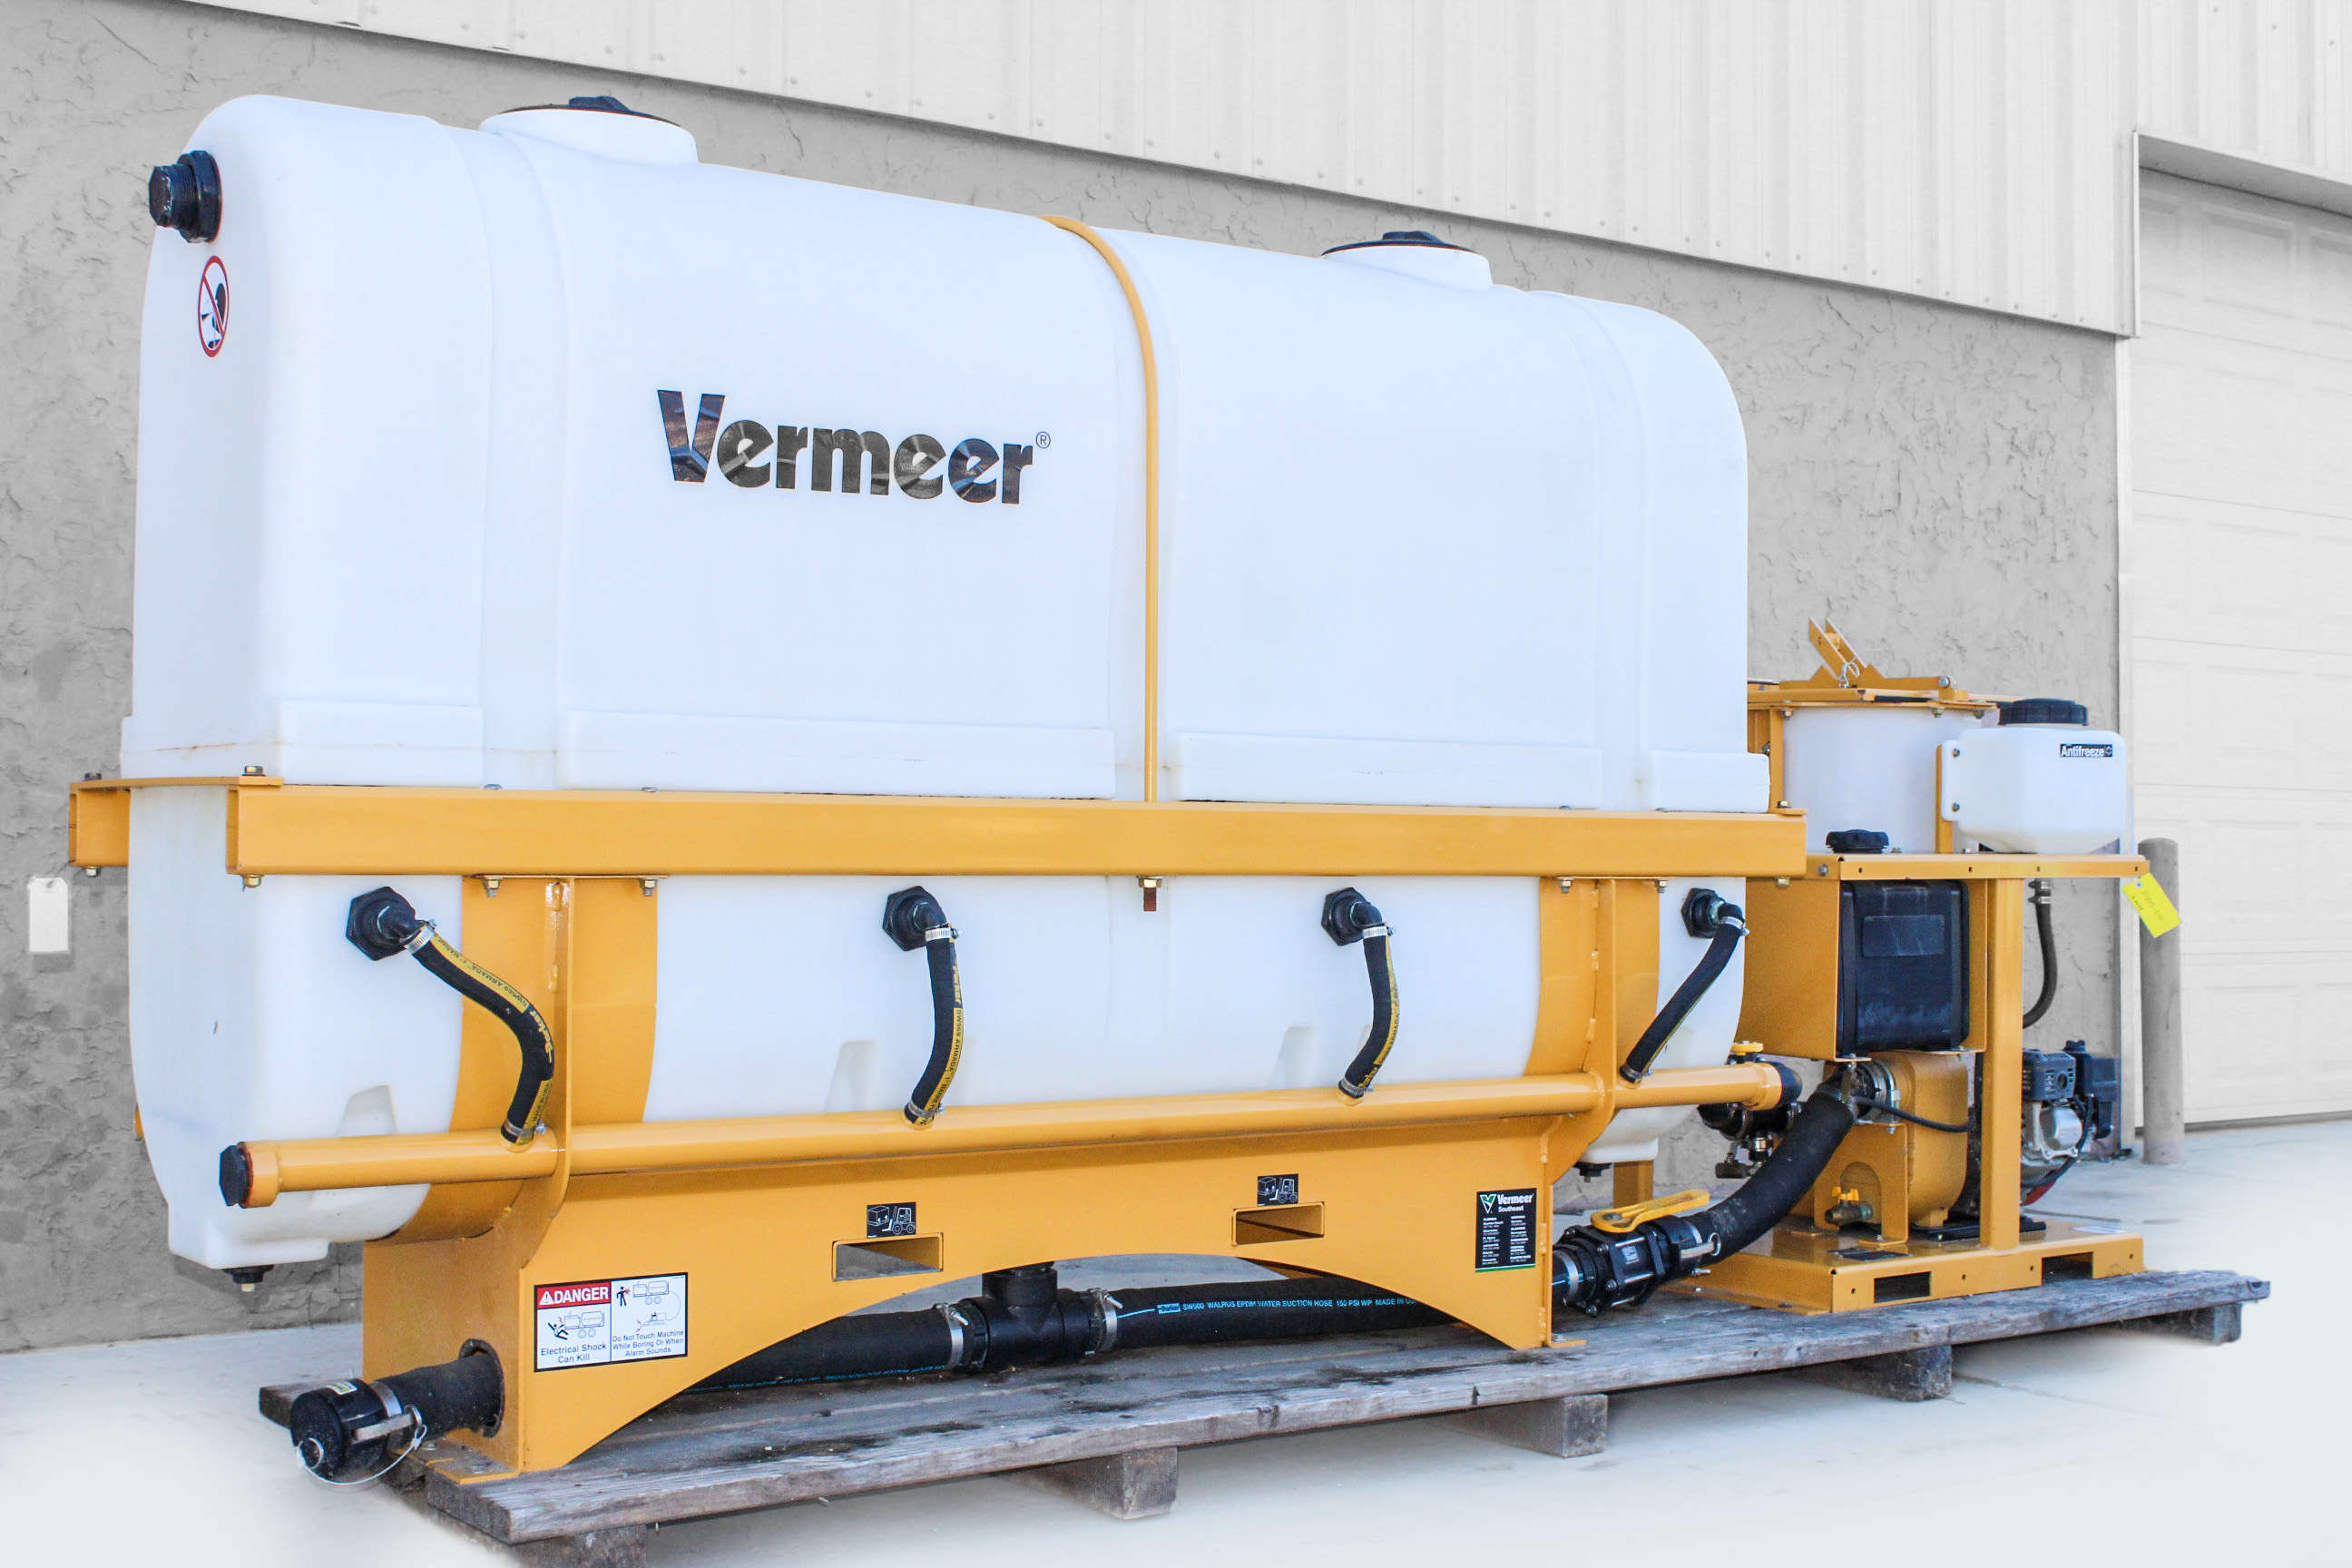 Vermeer mx125 mud mixing system